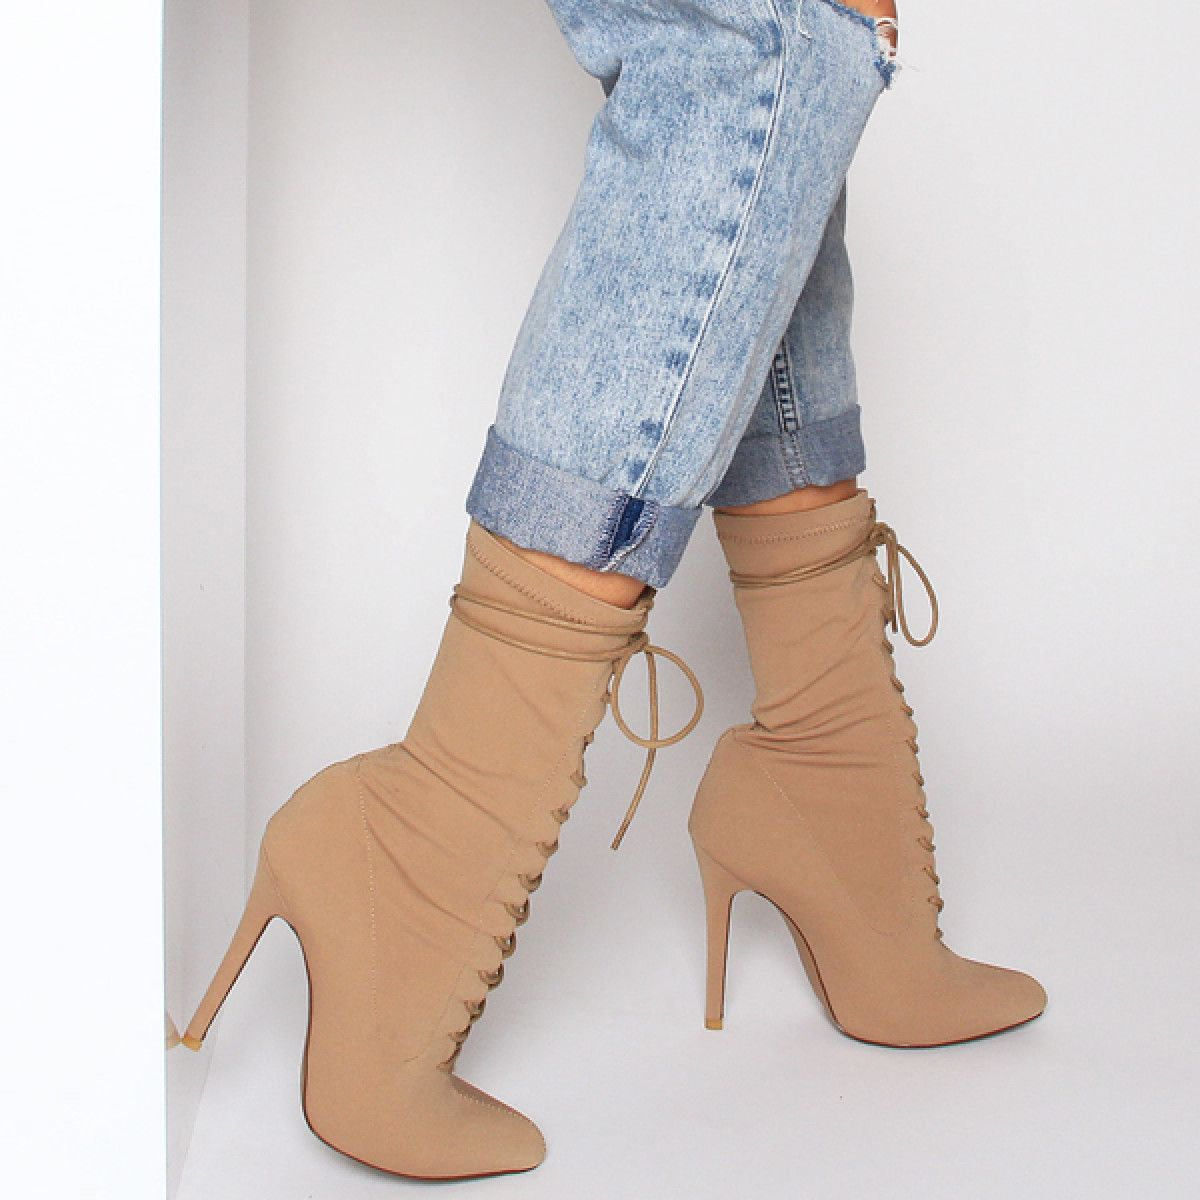 fbff1adeea Celia Nude Lycra Lace Up Pointed Ankle Boots in 2019 | Outfits ...